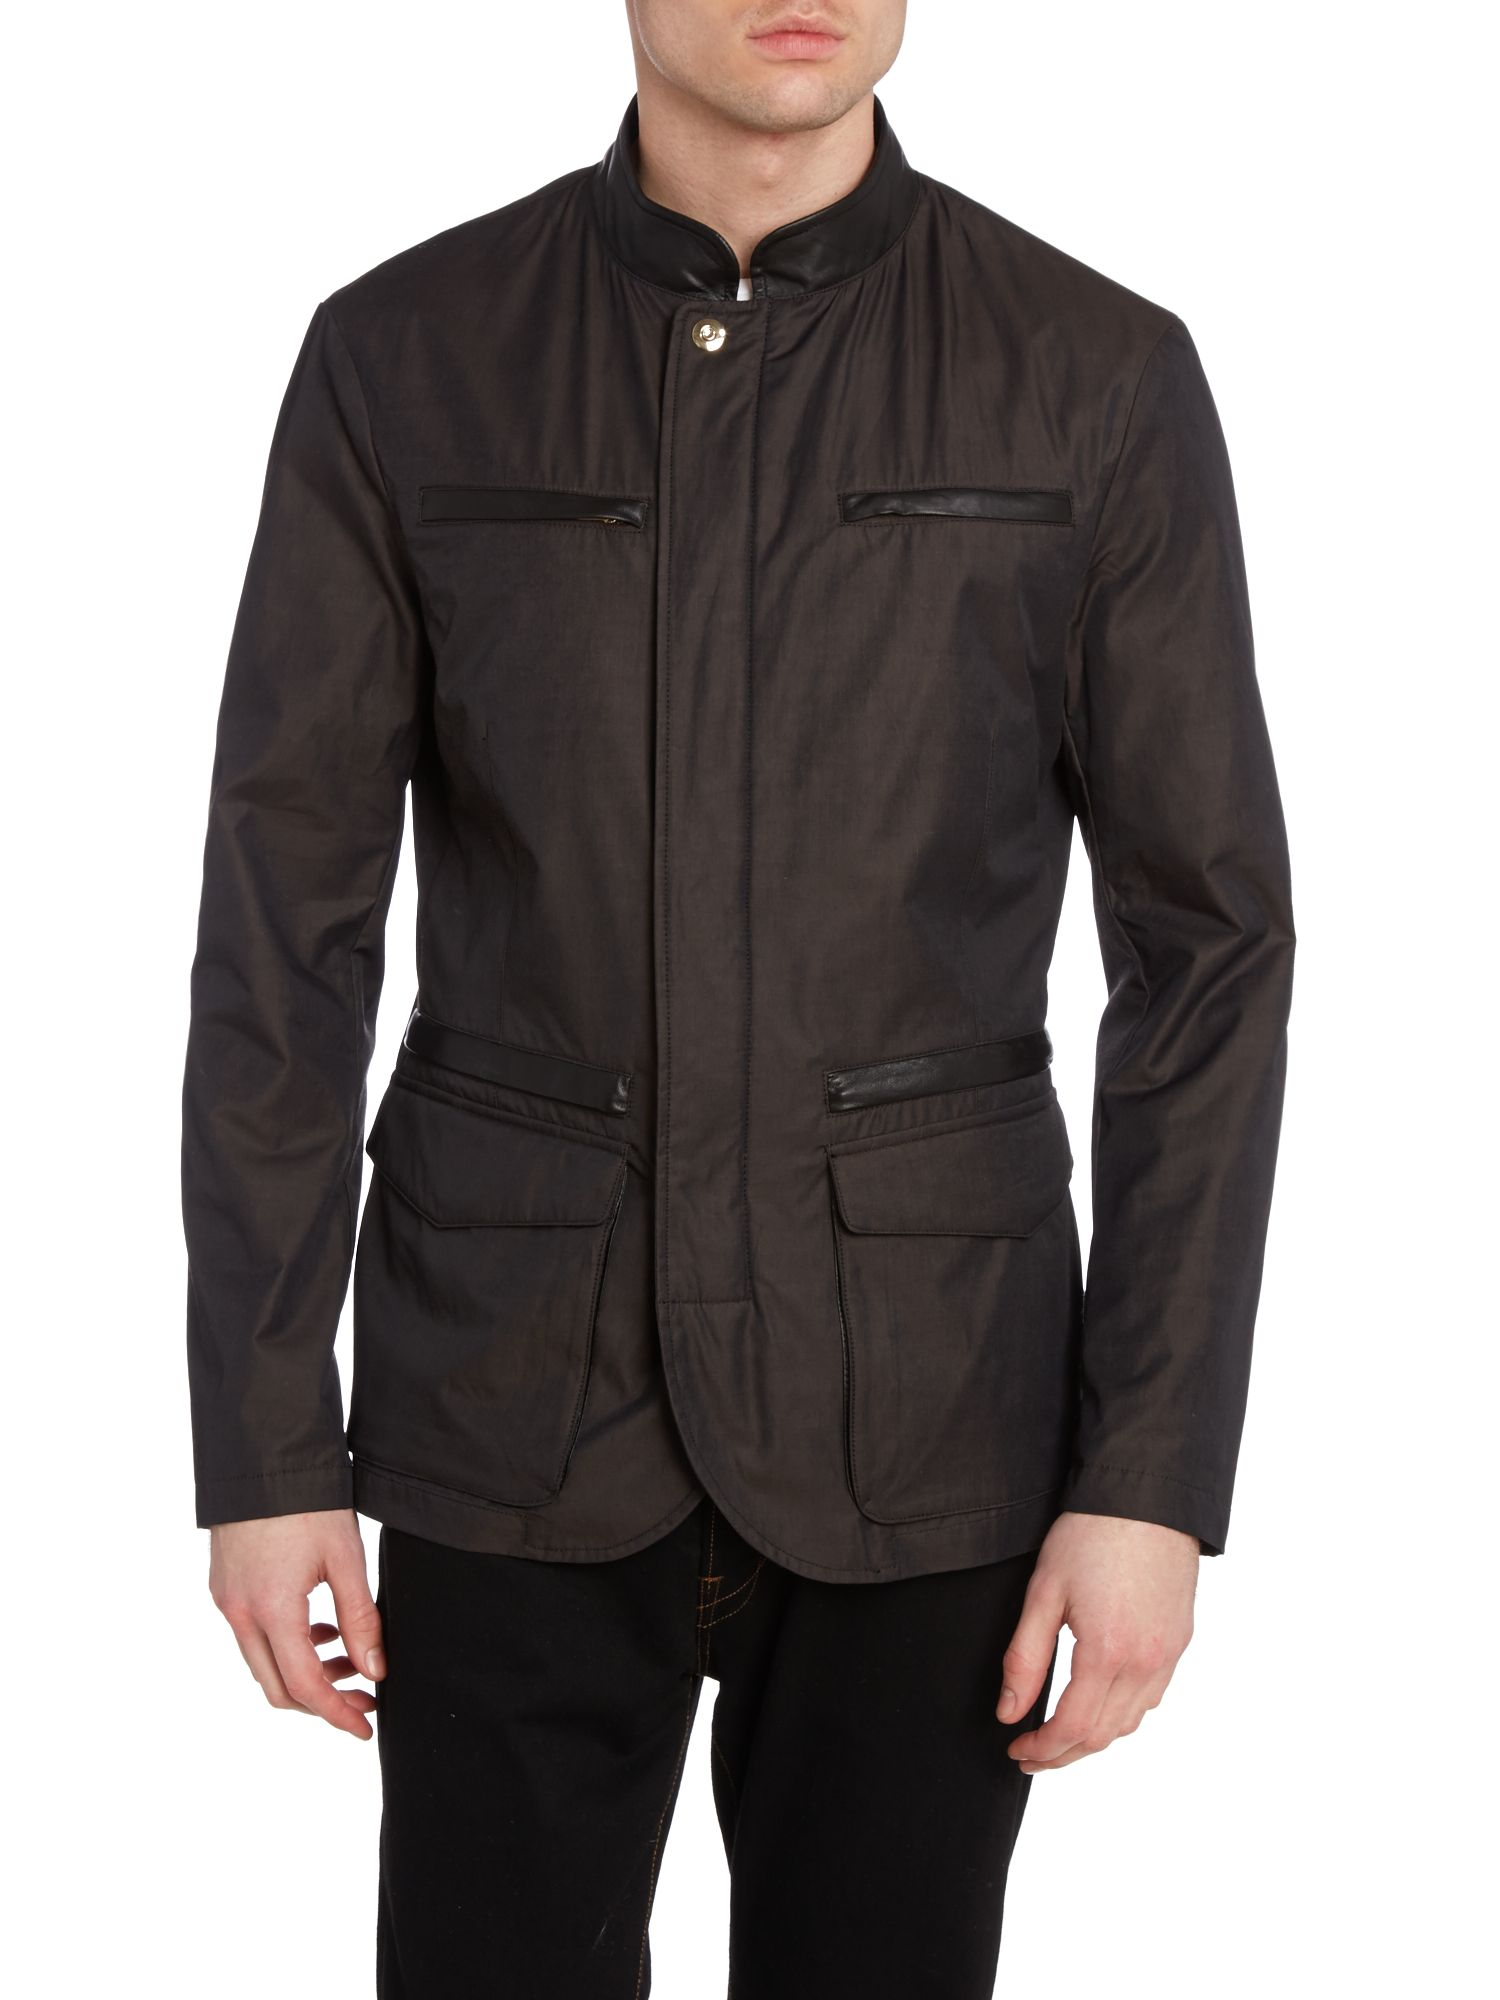 Four pocket leather trim coat